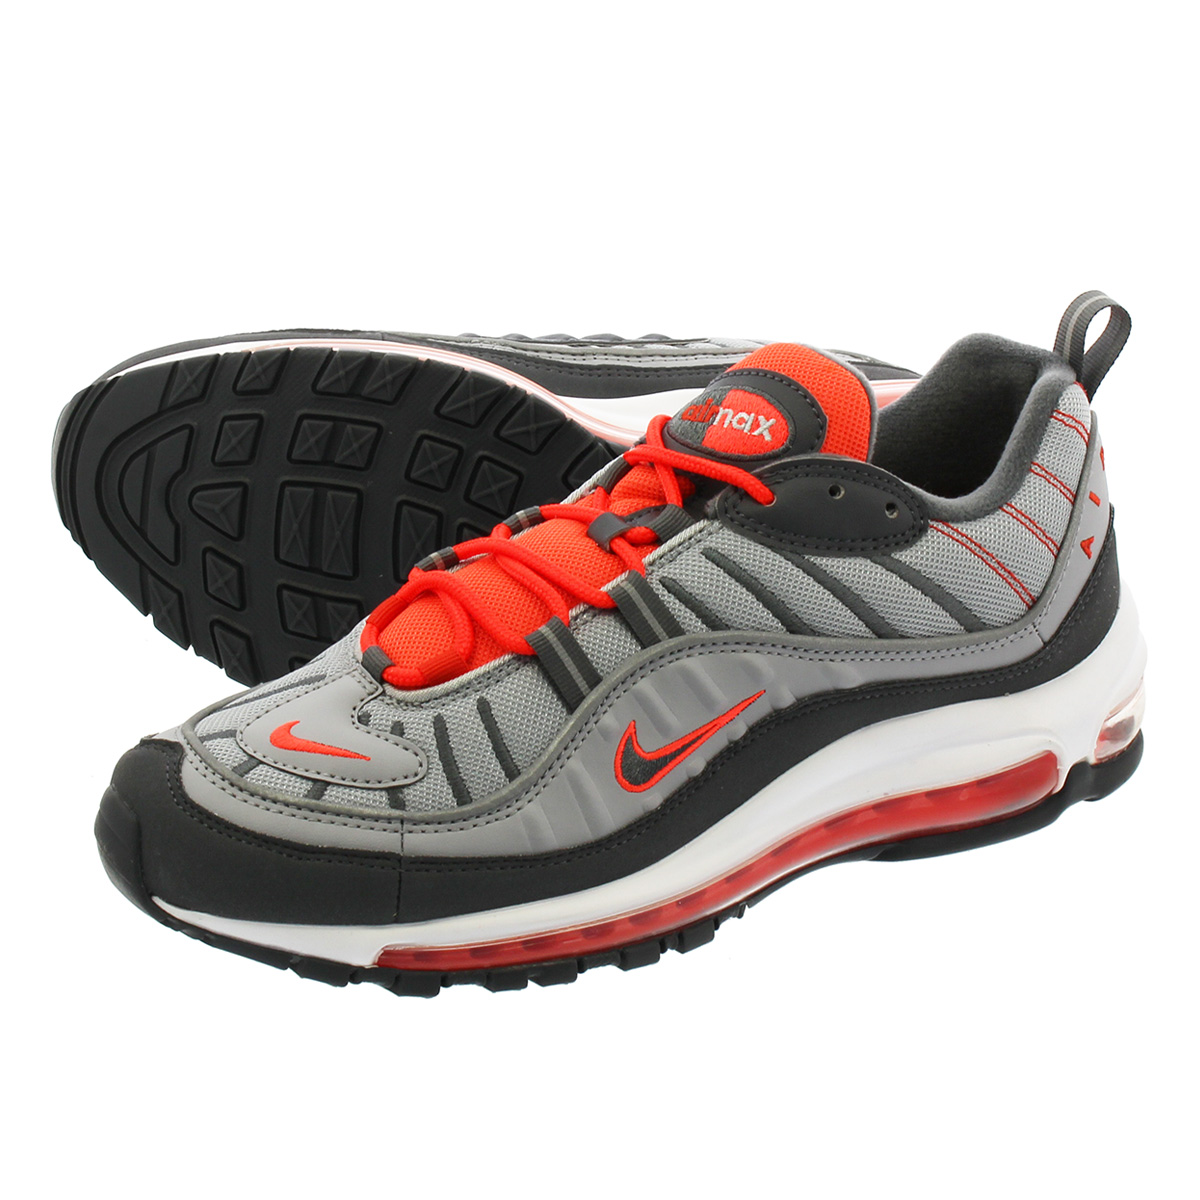 3826459178 NIKE AIR MAX 98 Kie Ney AMAX 98 WOLF GREY/DARK GREY/TOTAL CRIMSON ...